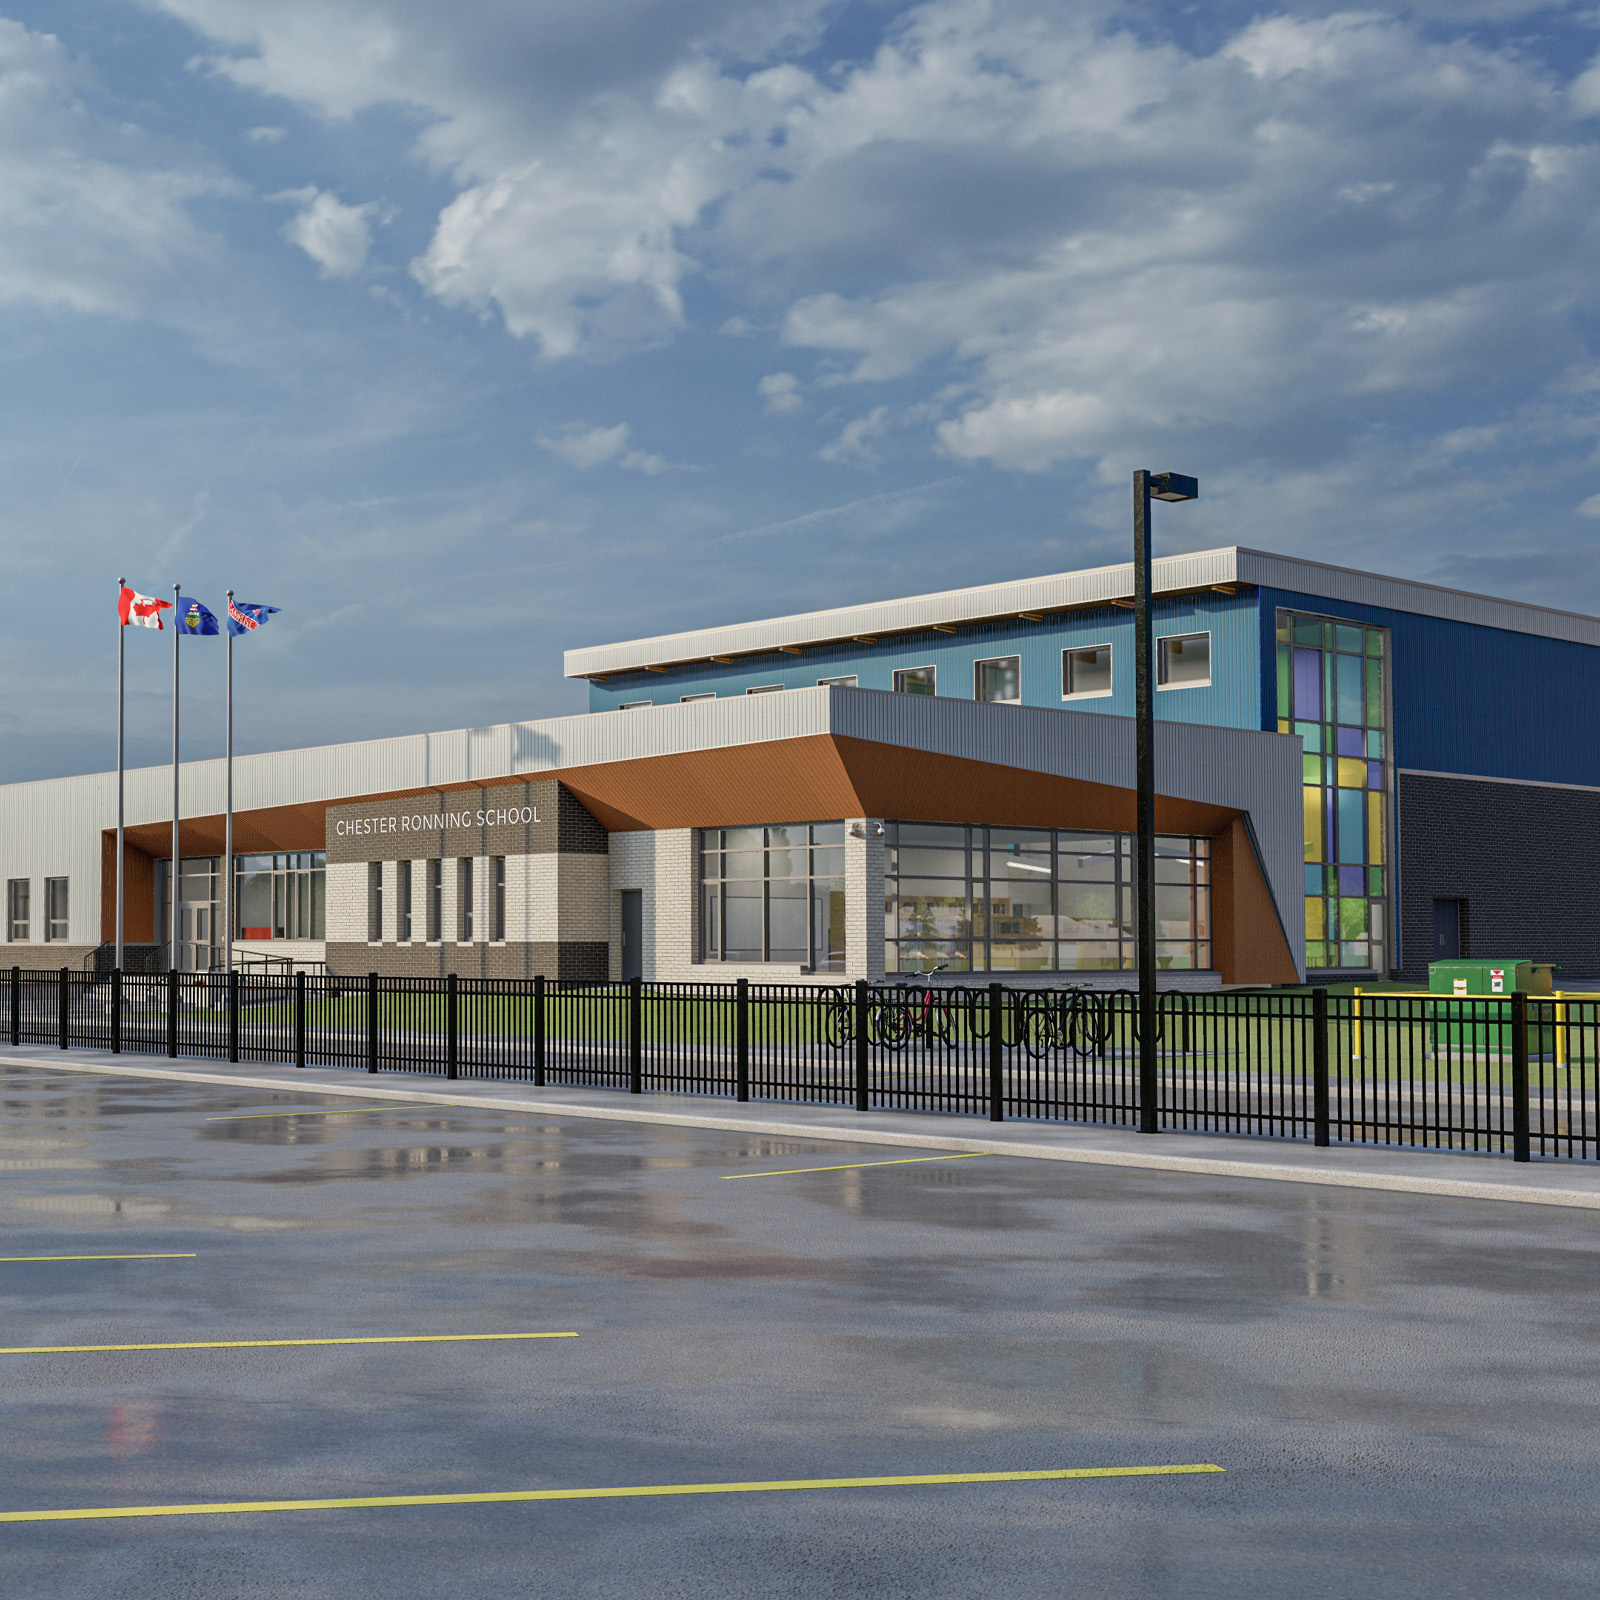 Chester Ronning School